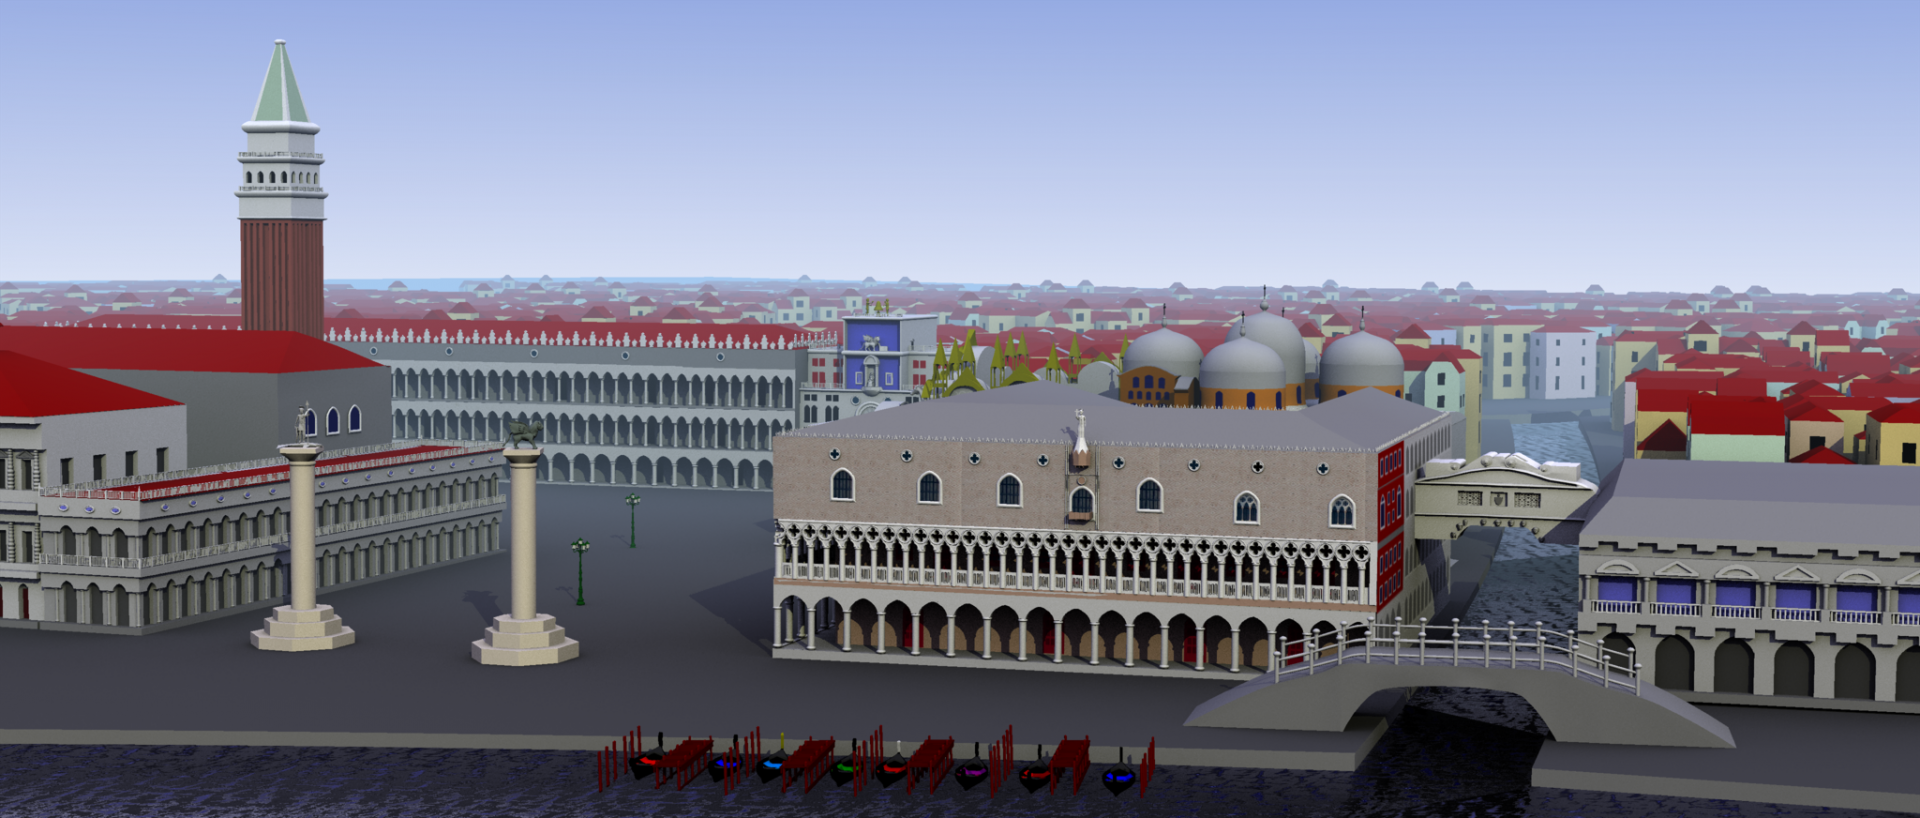 Venice in progress AOq  fog water experiment0.png